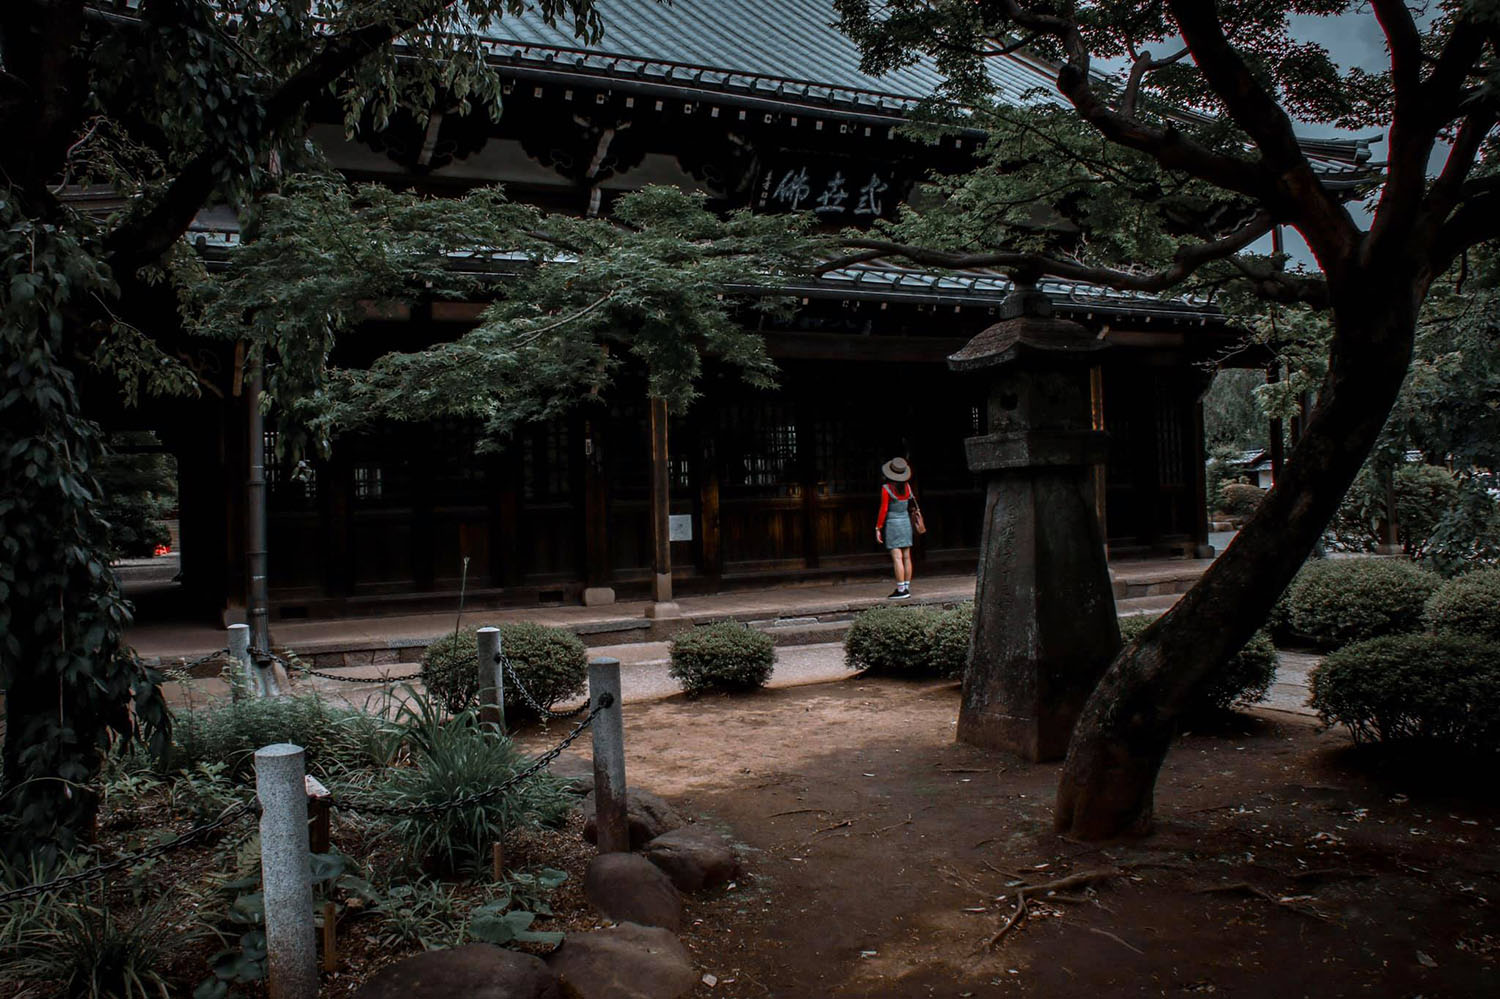 Gotokuji Temple - an Edo Period Buddhist Temple